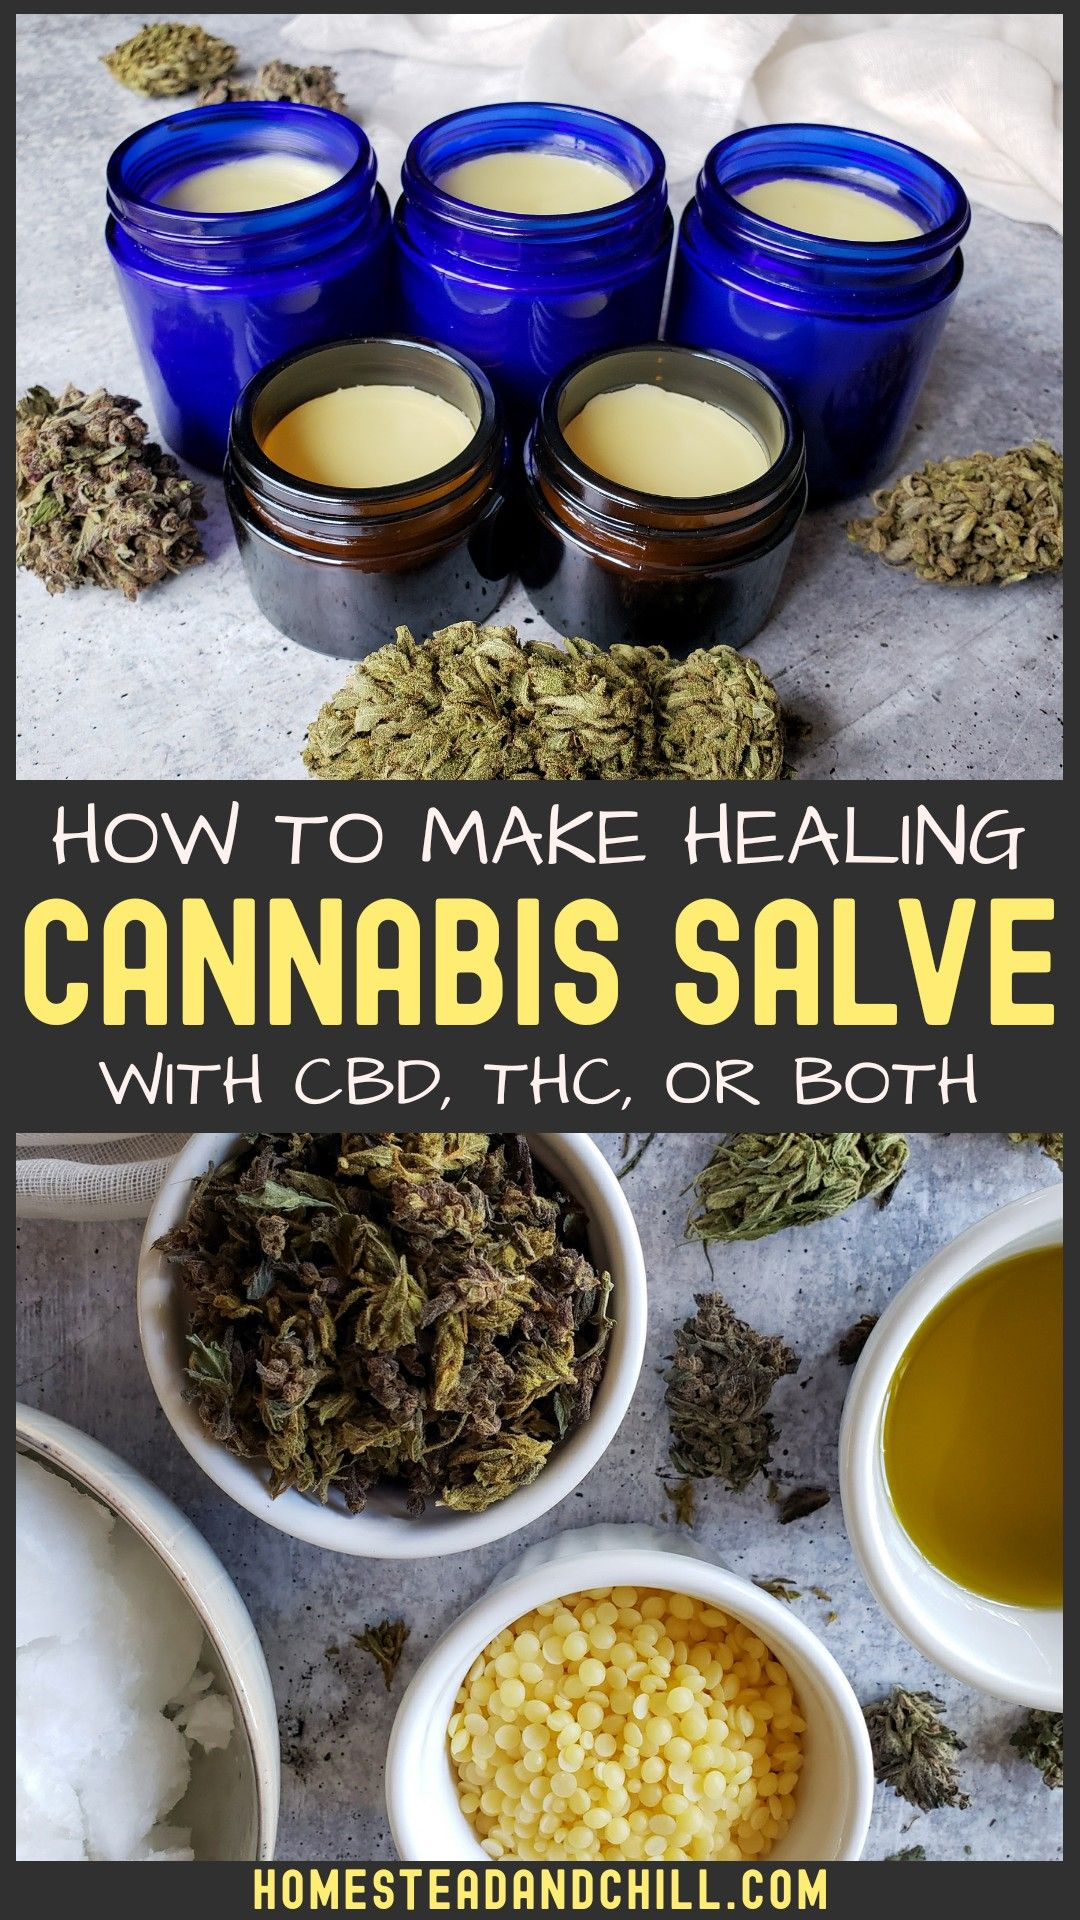 ome learn how to make your own cannabis salve at home, using marijuana or hemp. Cannabis salve can help to reduce inflammation, soothe skin irritation, joint pain, psoriasis, and more! It also happens to be quite simple to make, and easy to customize to suit your needs. #cannabis #cbd #cannabissalve #cannabinoids #naturalhealth